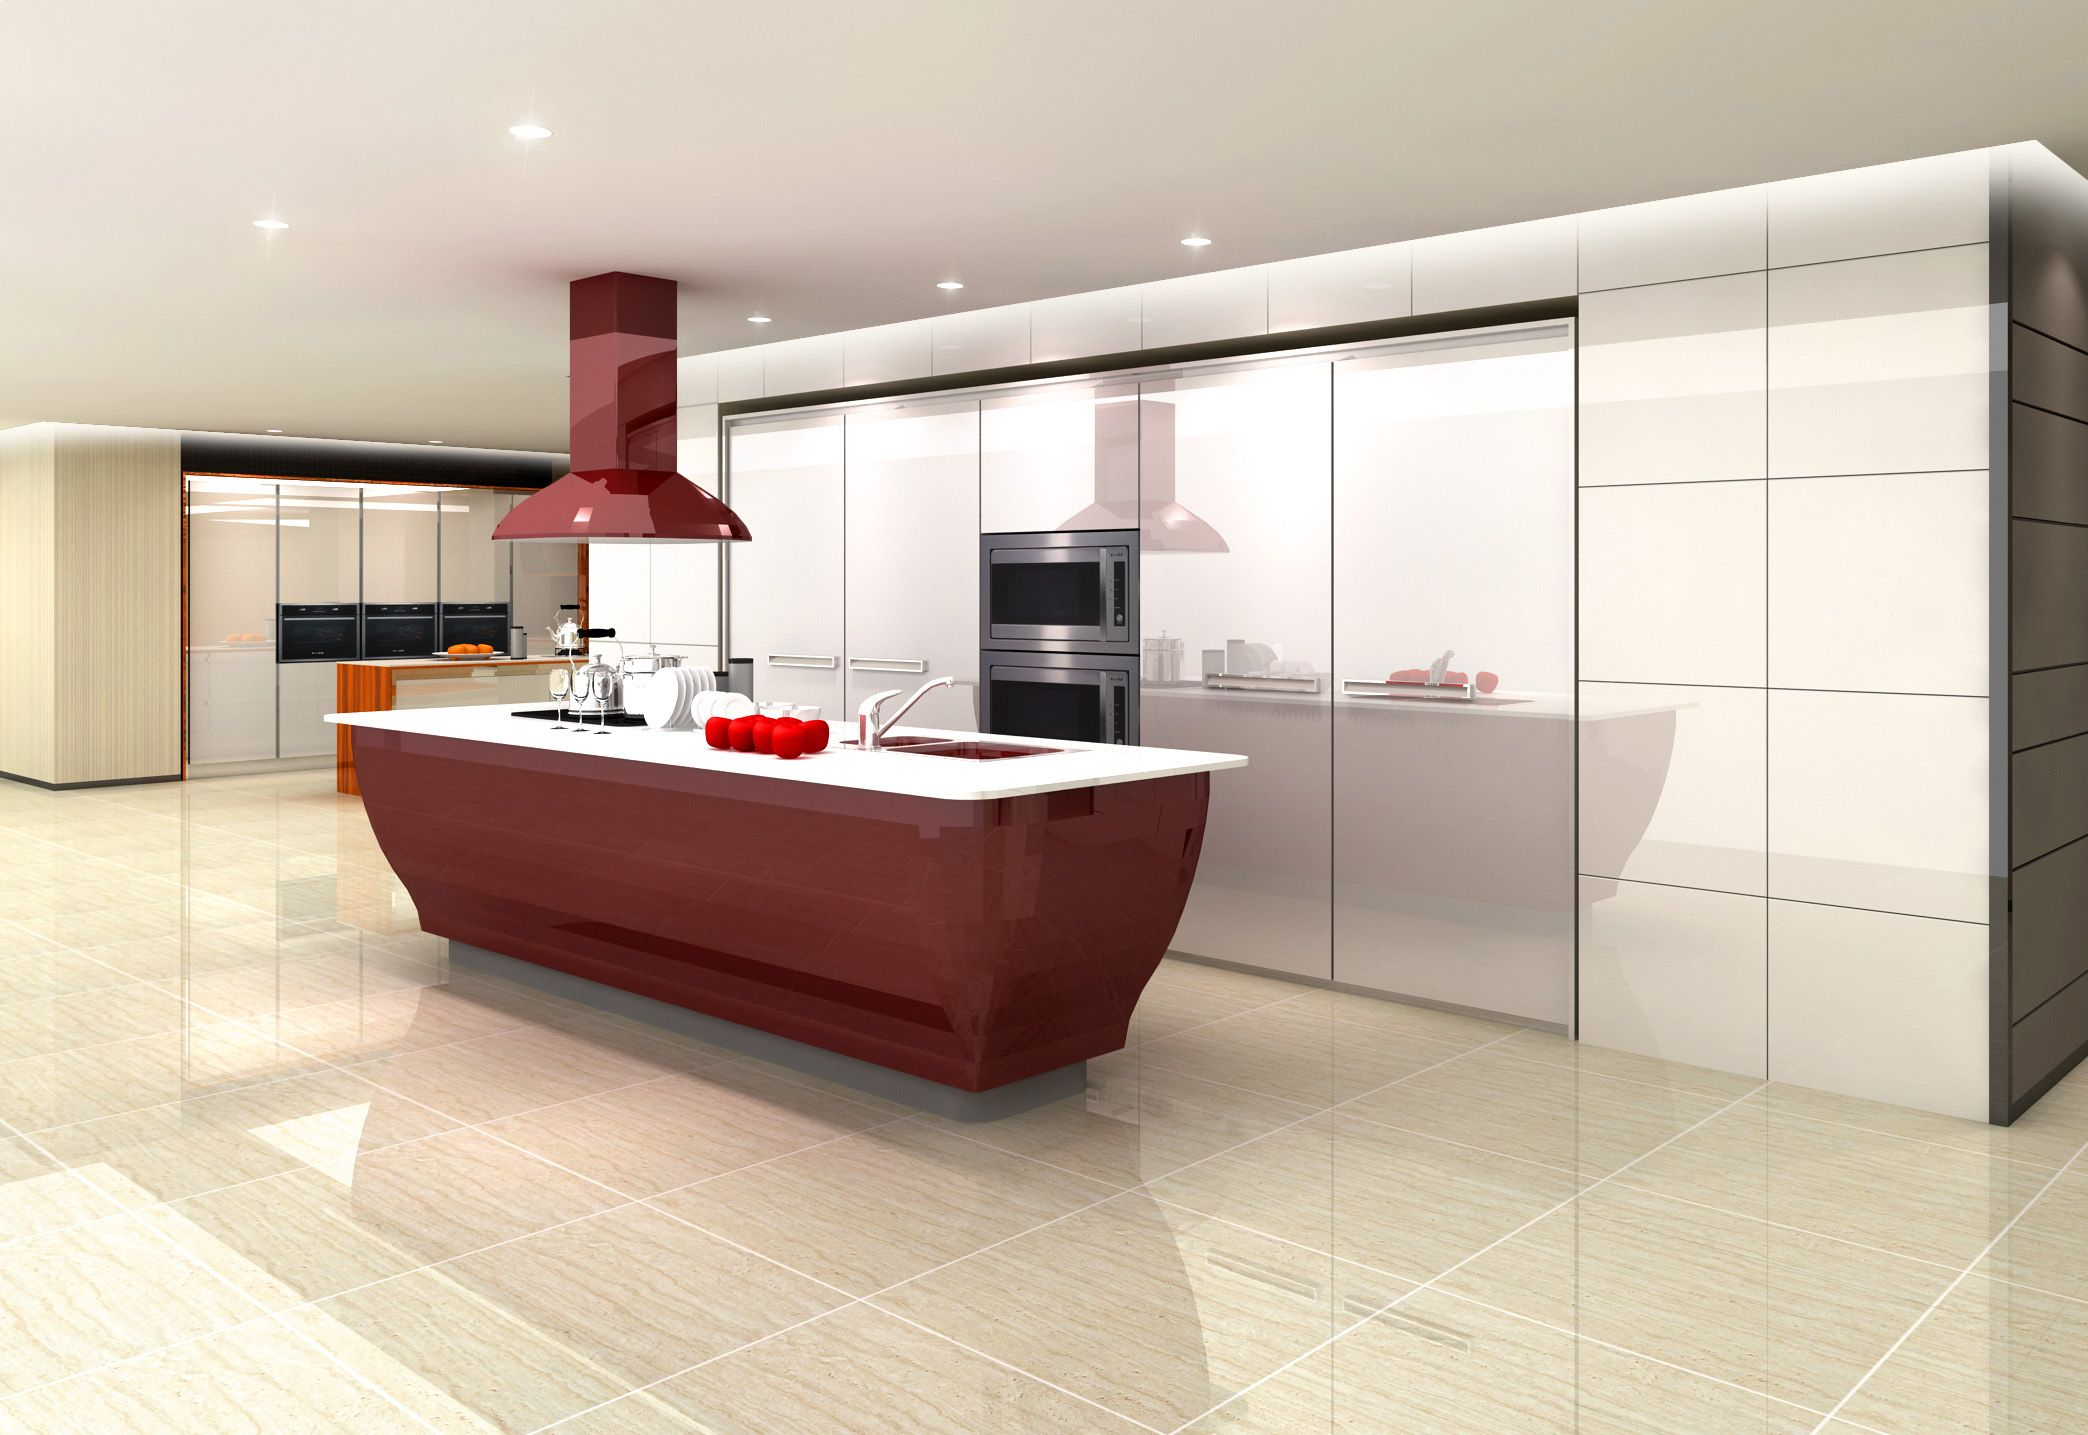 Classic Style Of Red Lacquer Kitchen Cabinet Kitchen Design Showrooms Kitchen Kitchen Design